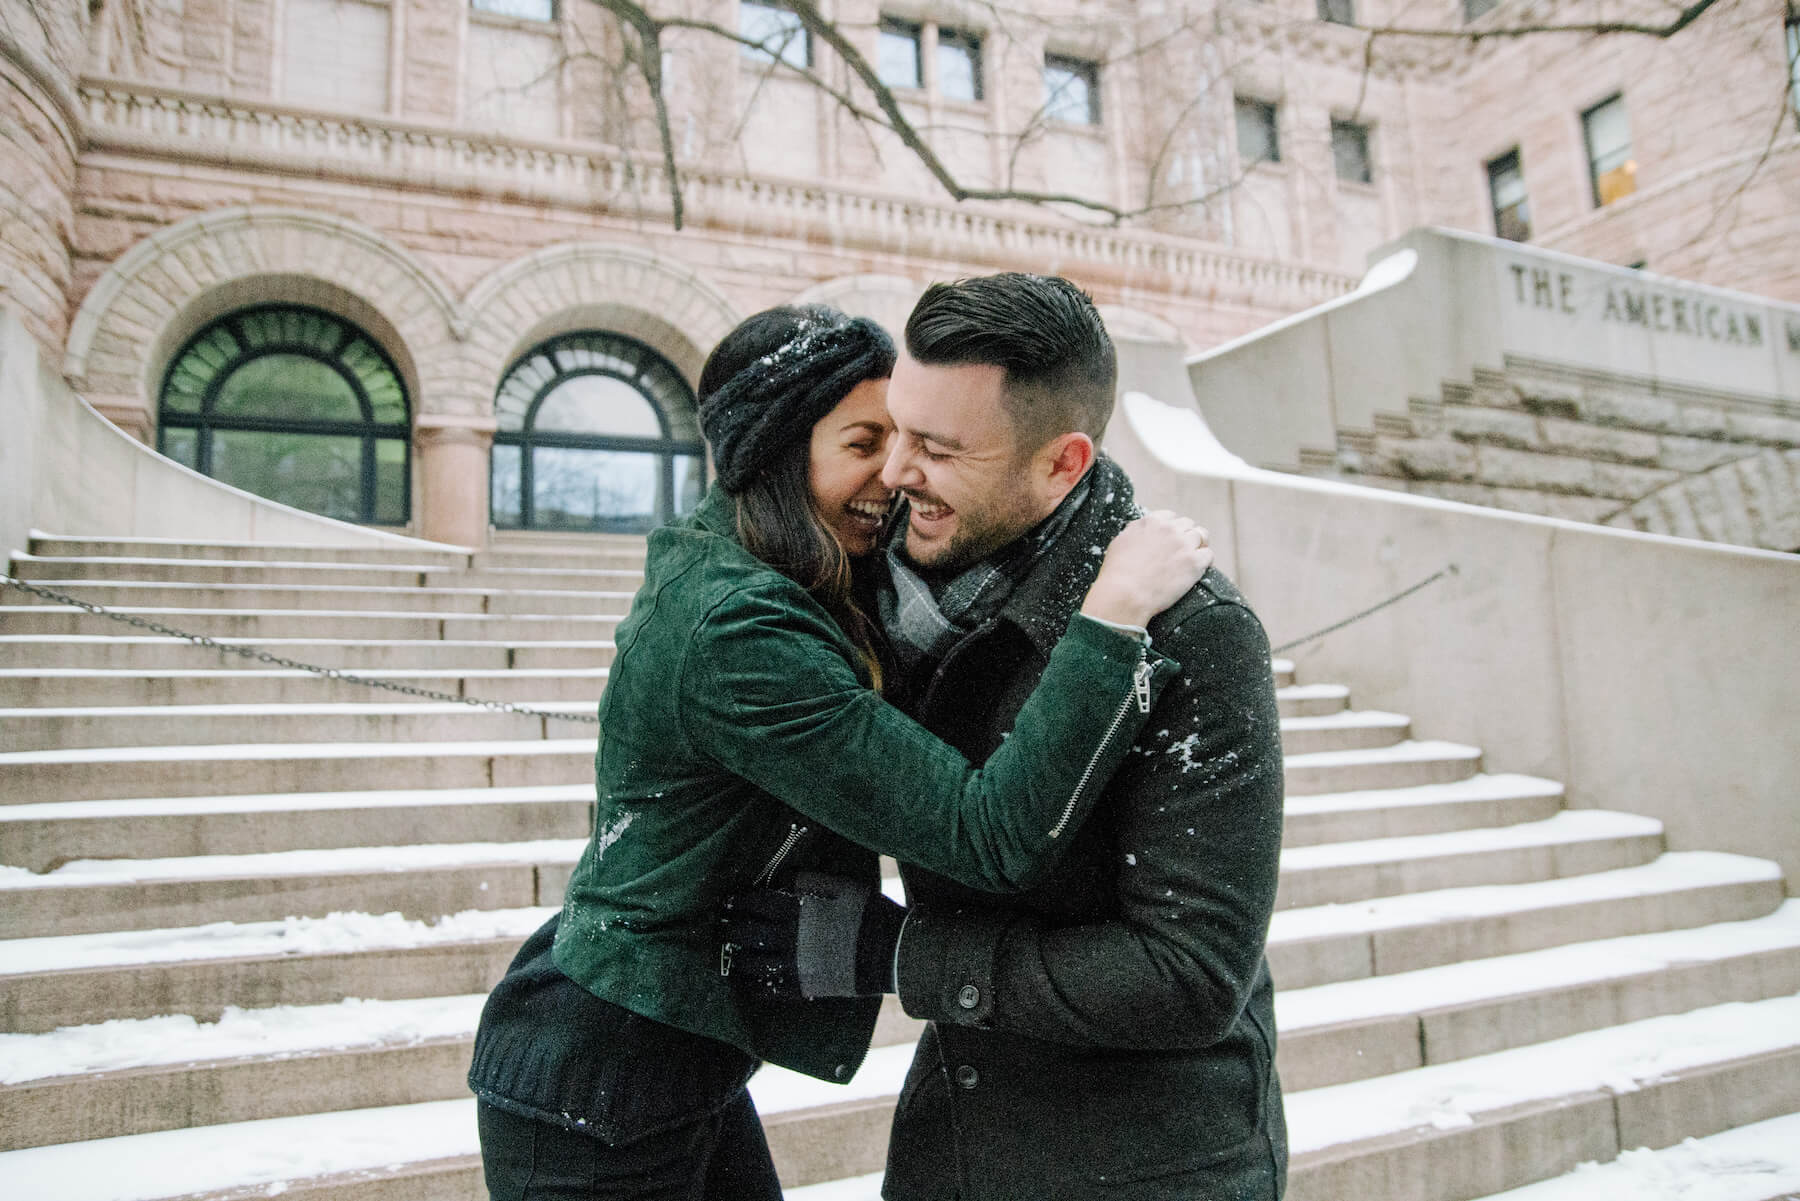 Couple laughing and holding each other in the snow in New York City, USA